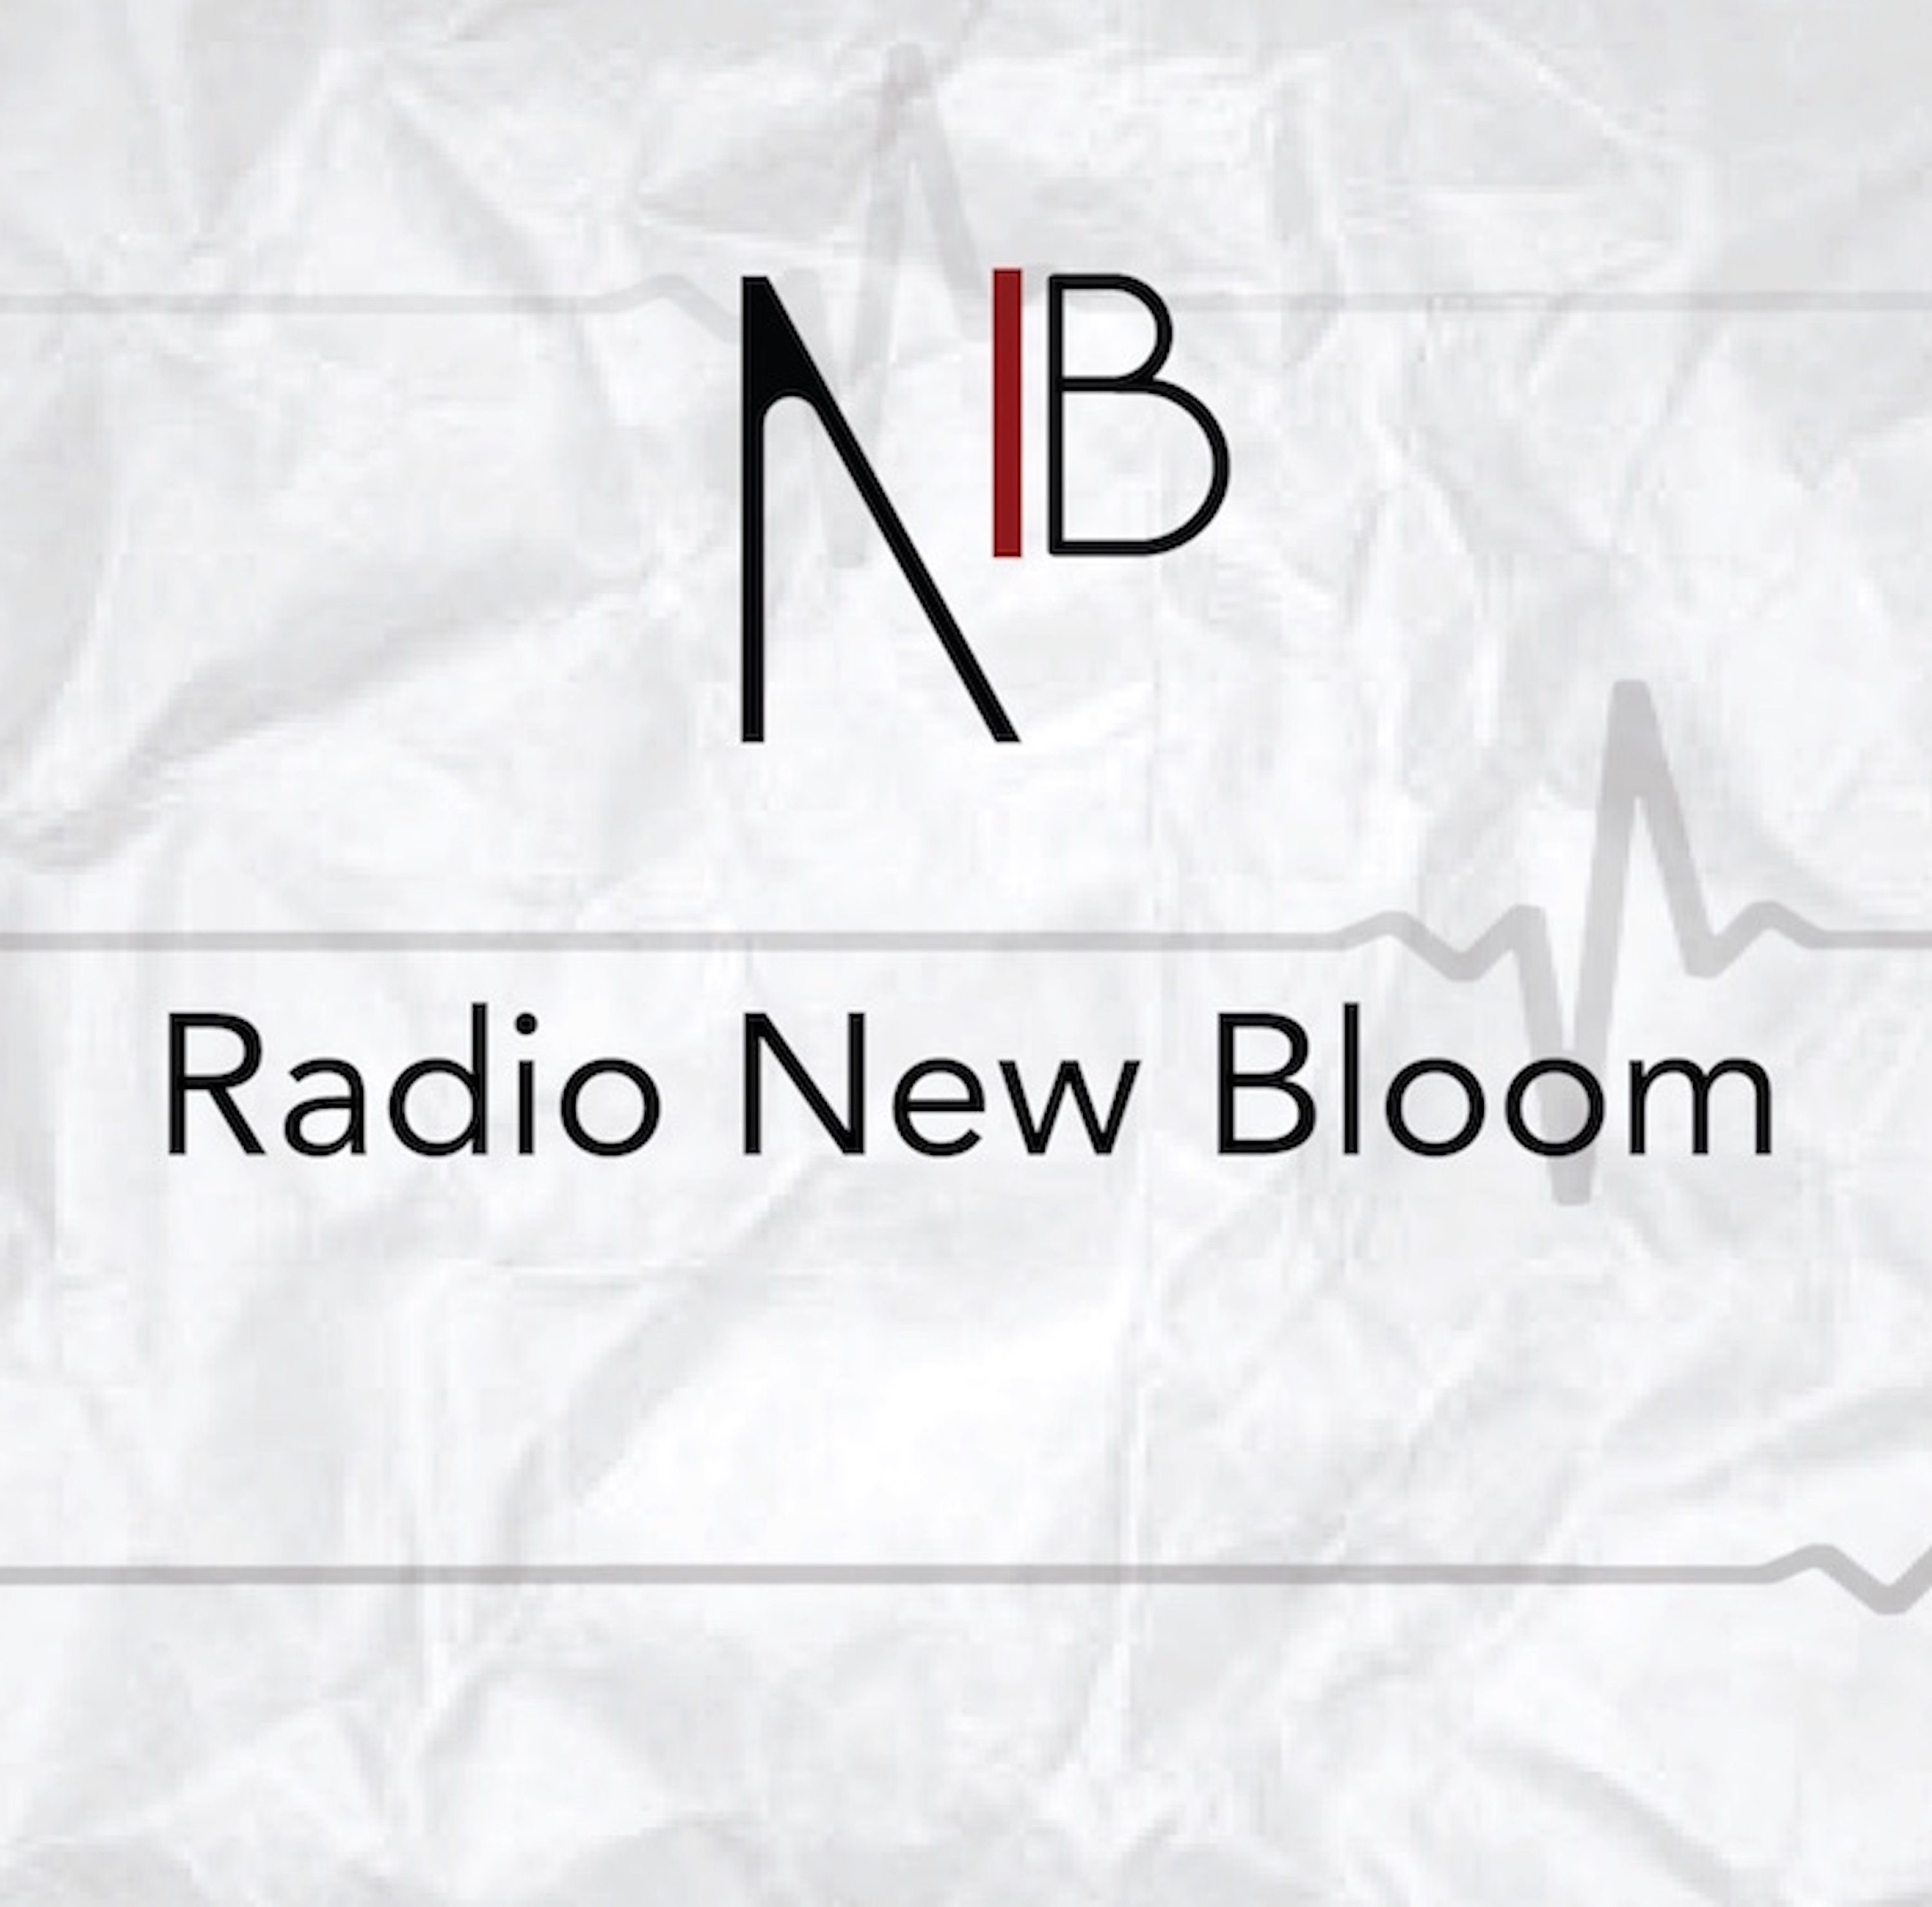 Radio New Bloom